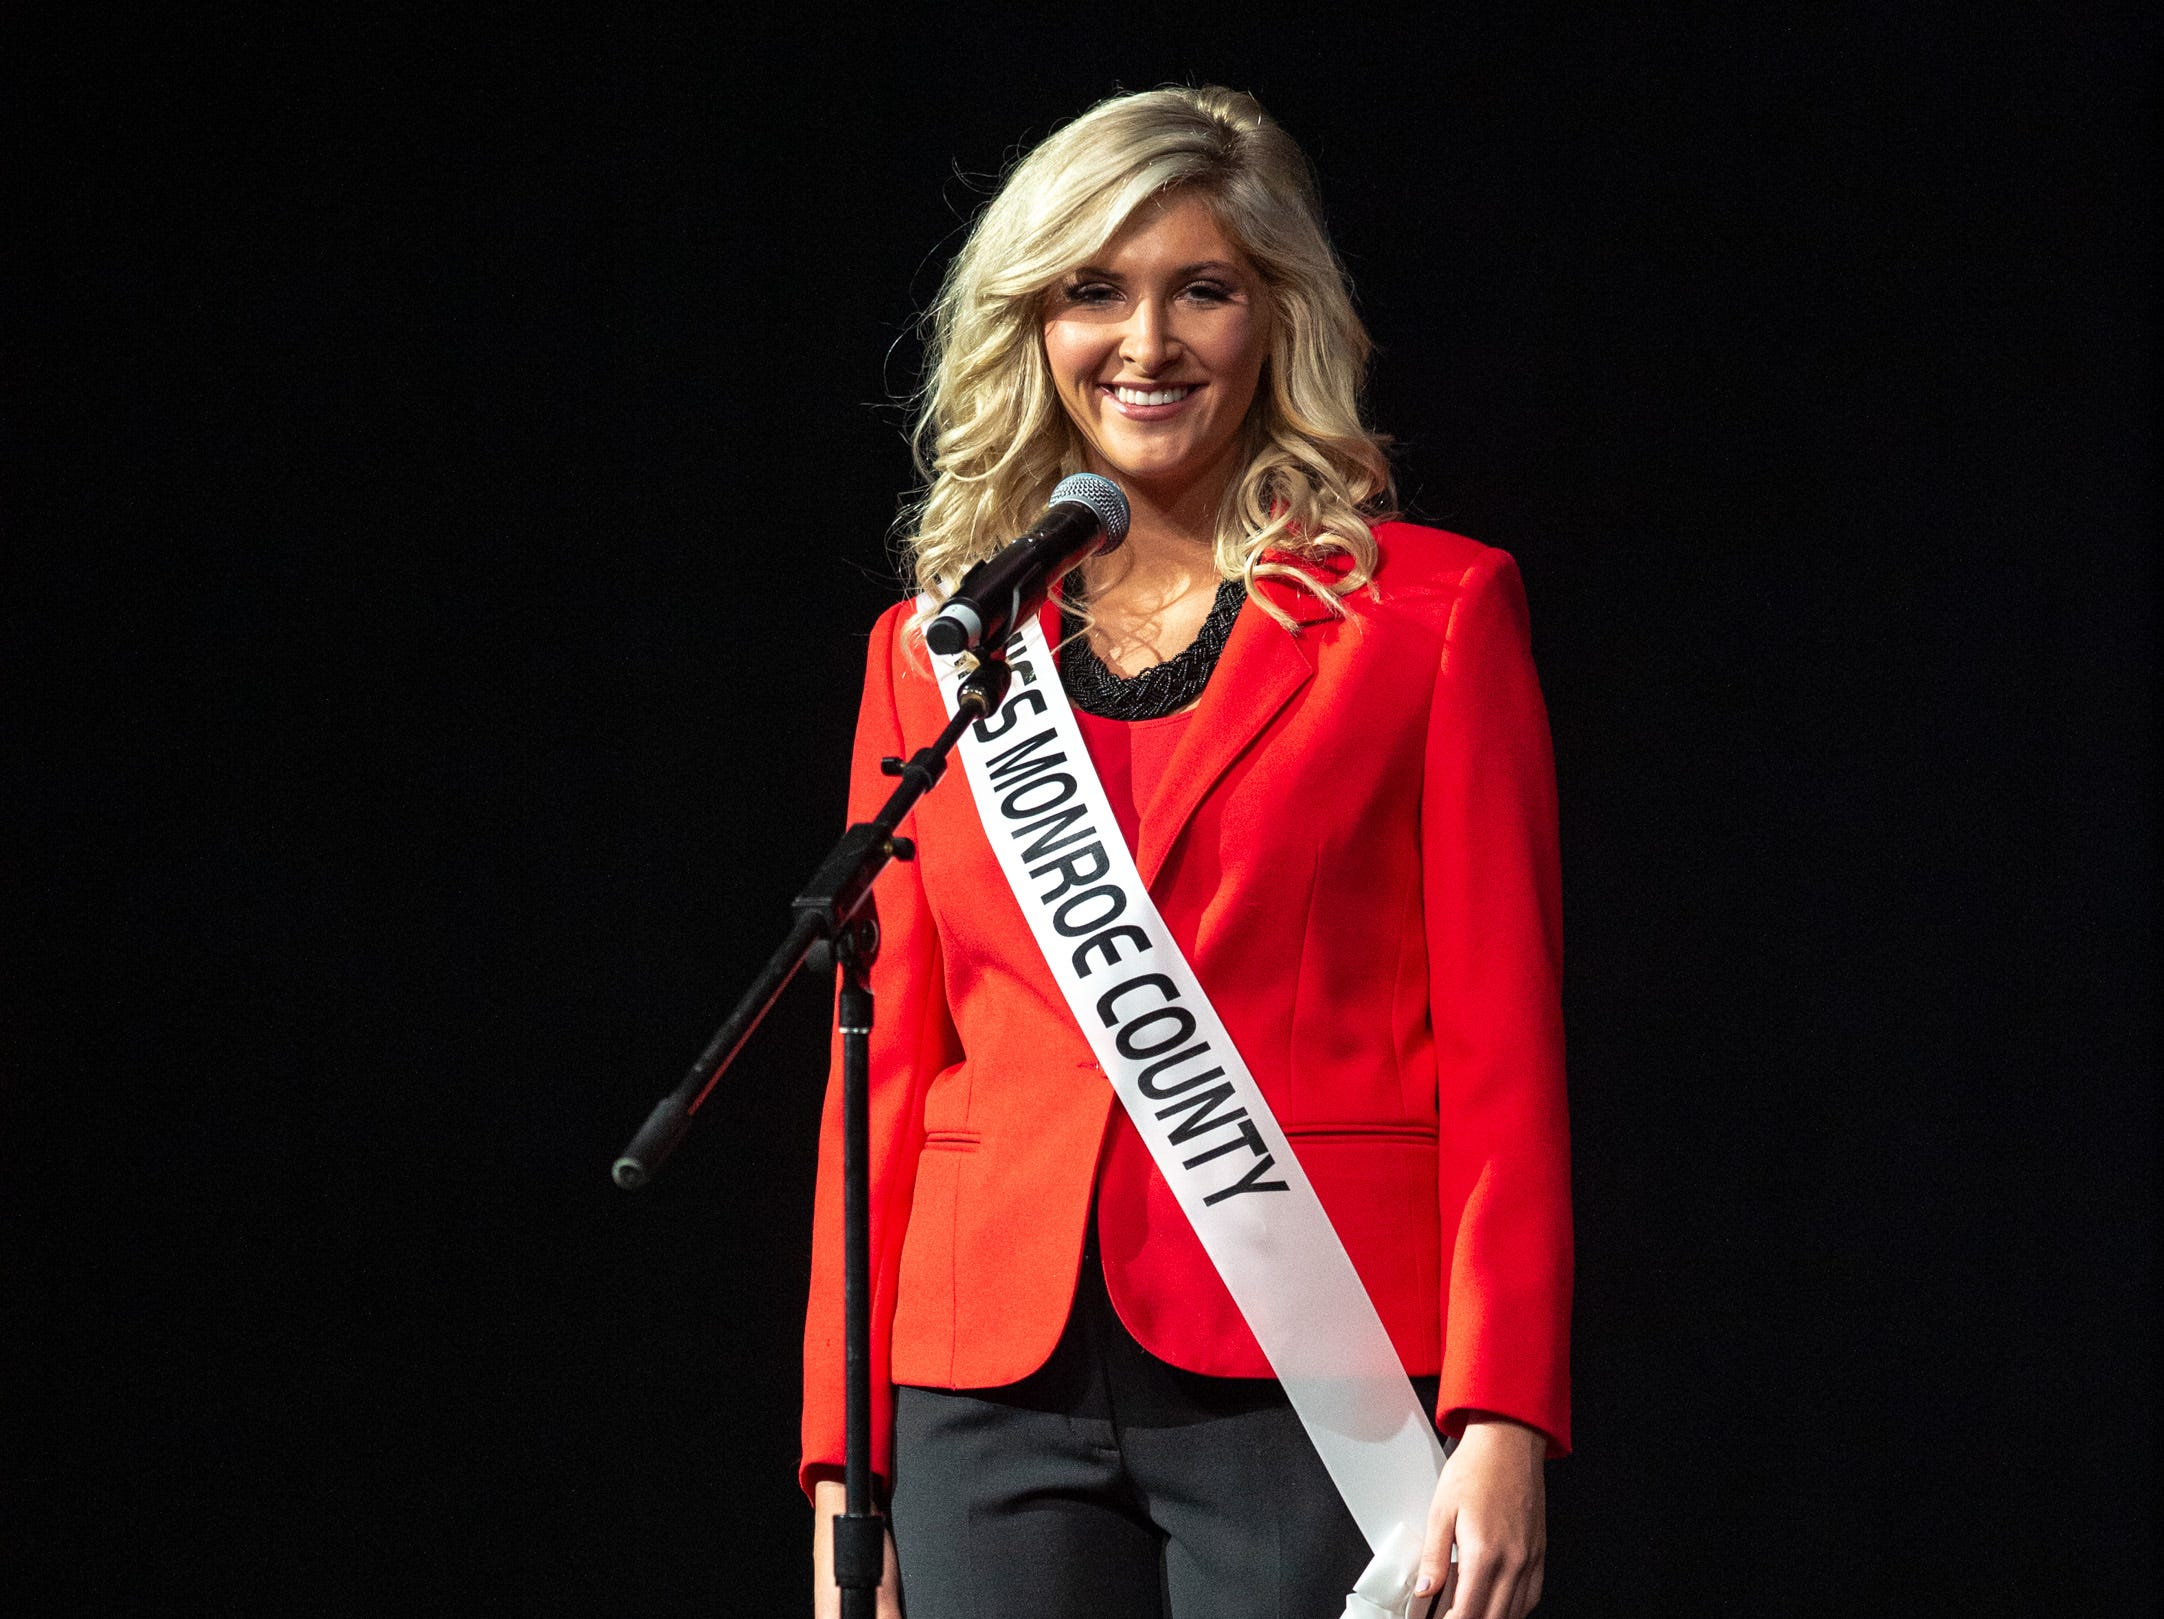 Miss Monroe County, Kylee Jones, during the 61st Indiana State Fair Queen Pageant at the Indiana State Fairgrounds in Indianapolis on Sunday, Jan. 6, 2019.